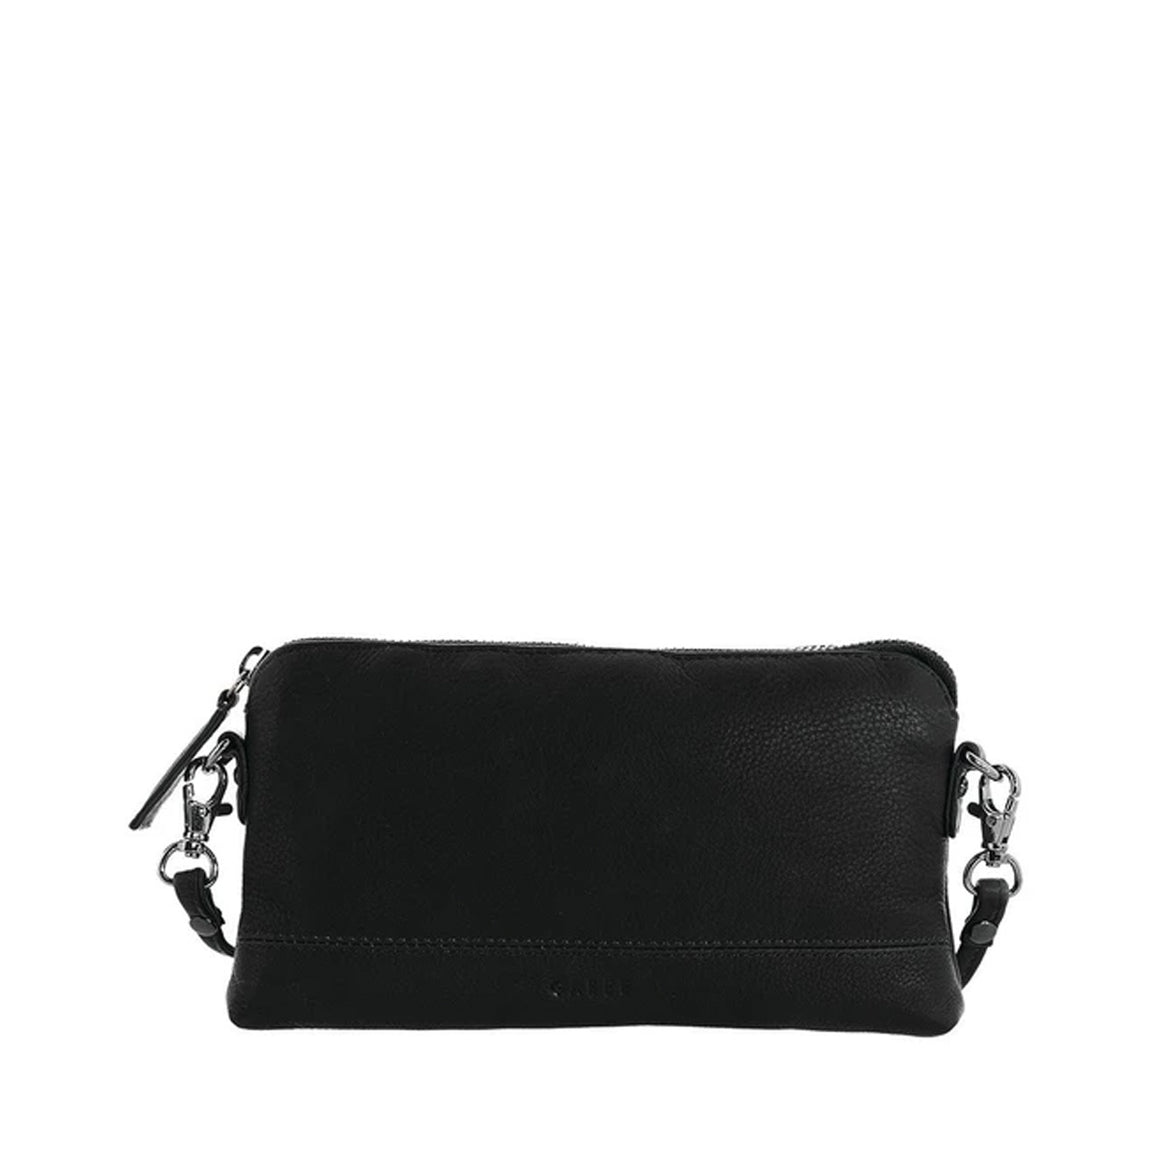 Gabee - Kara purse with strap